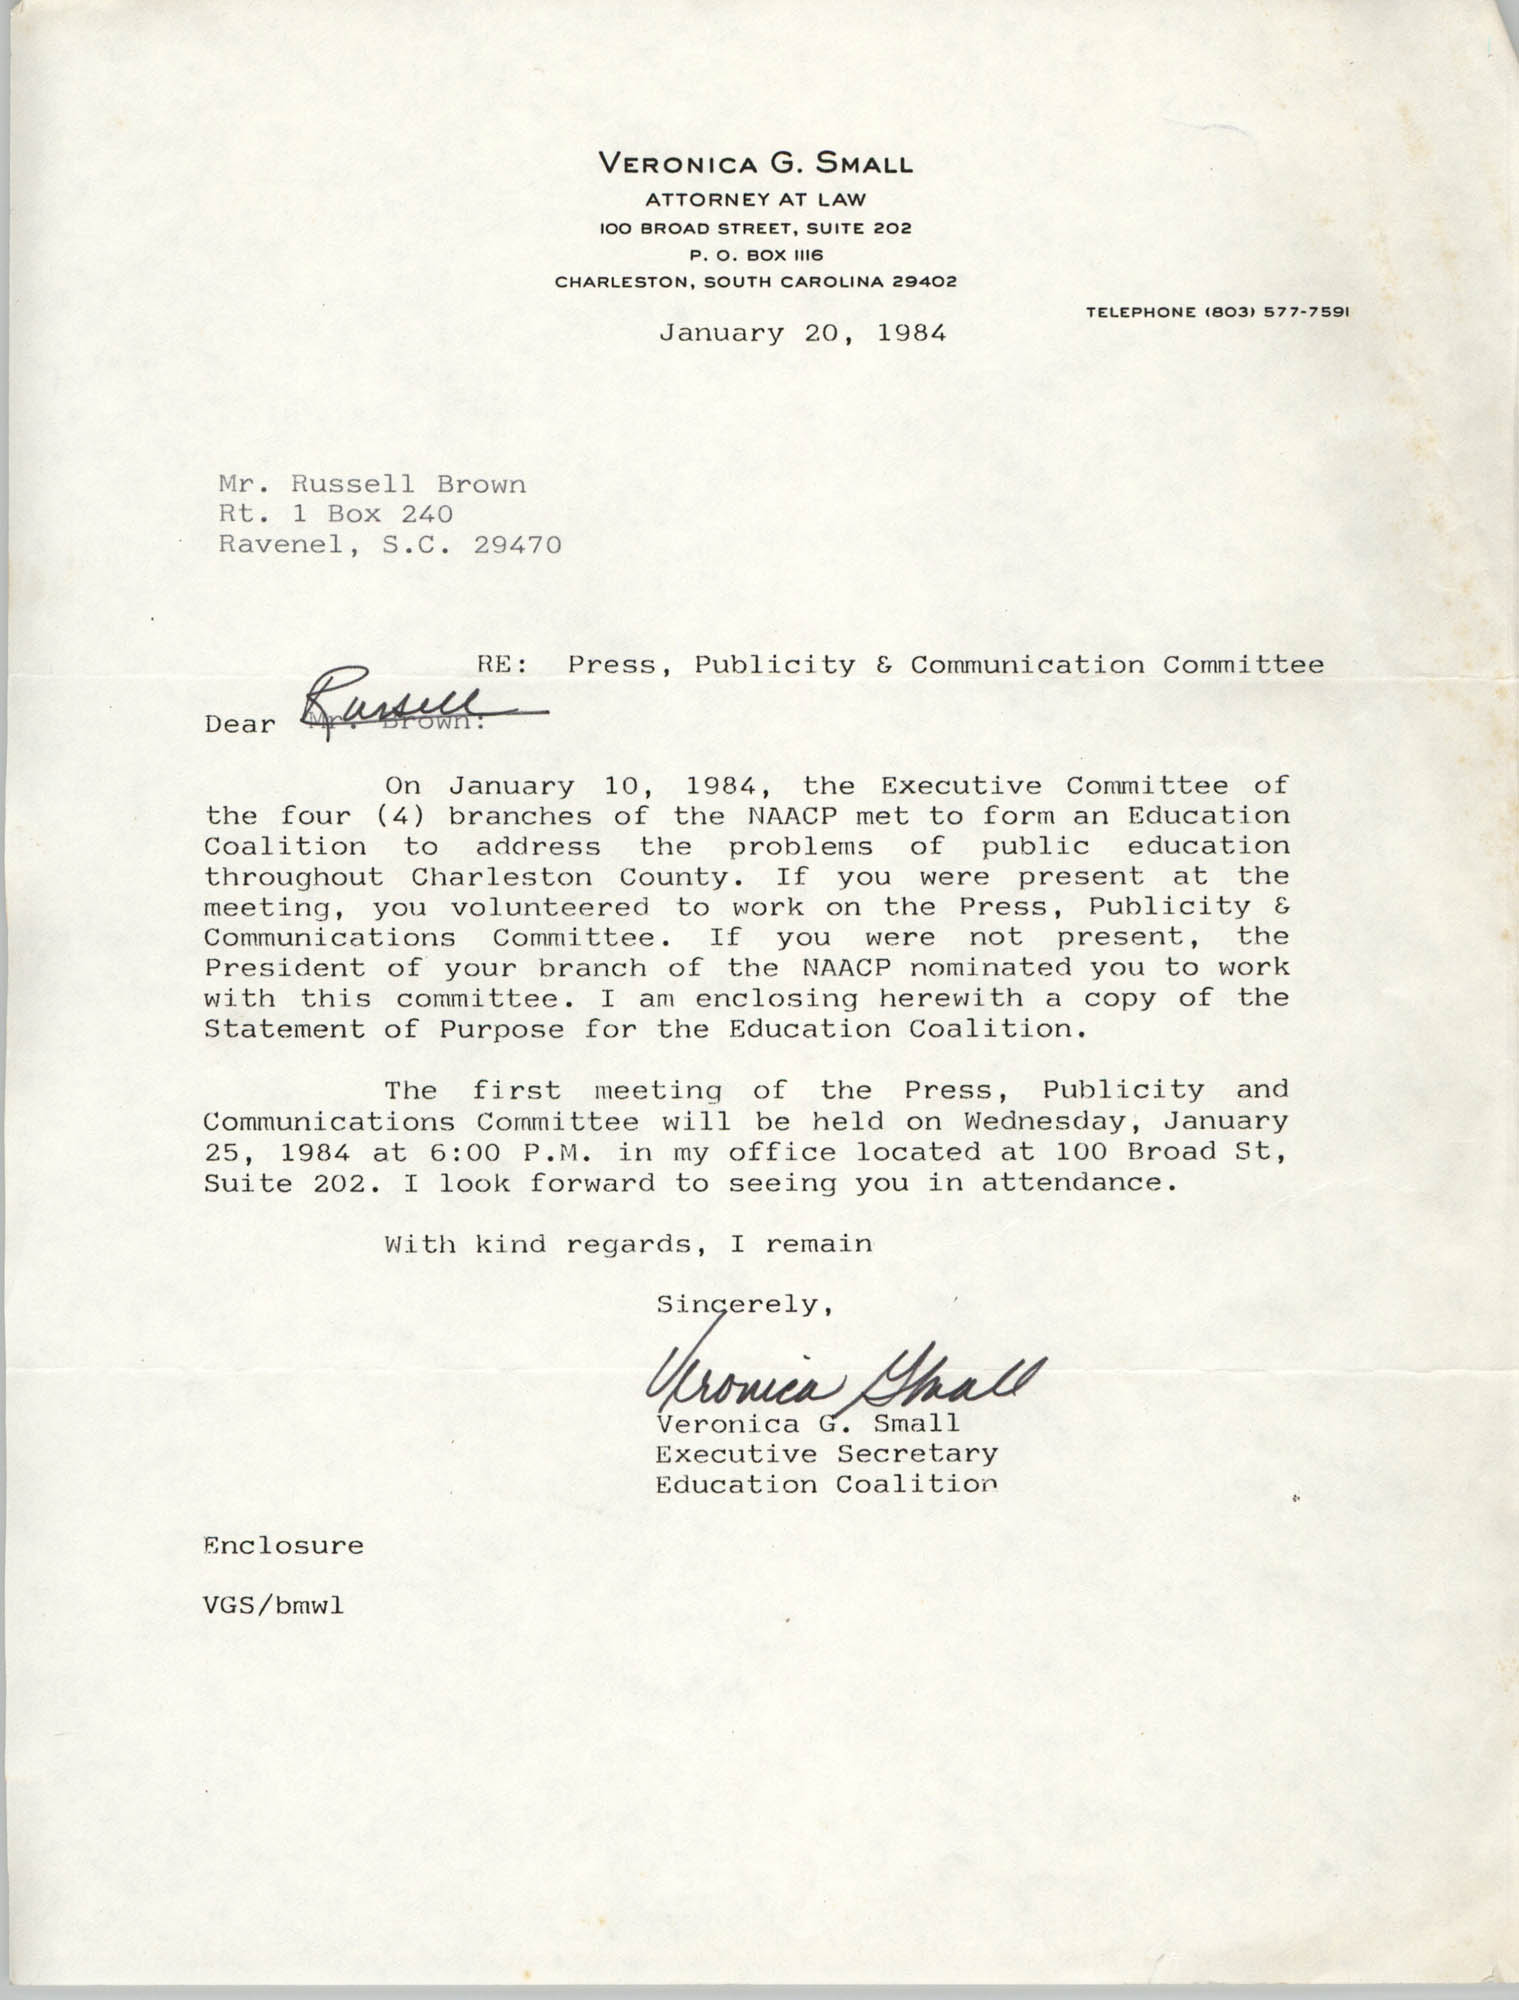 Letter from Veronica G. Small to Russell Brown, January 20, 1984